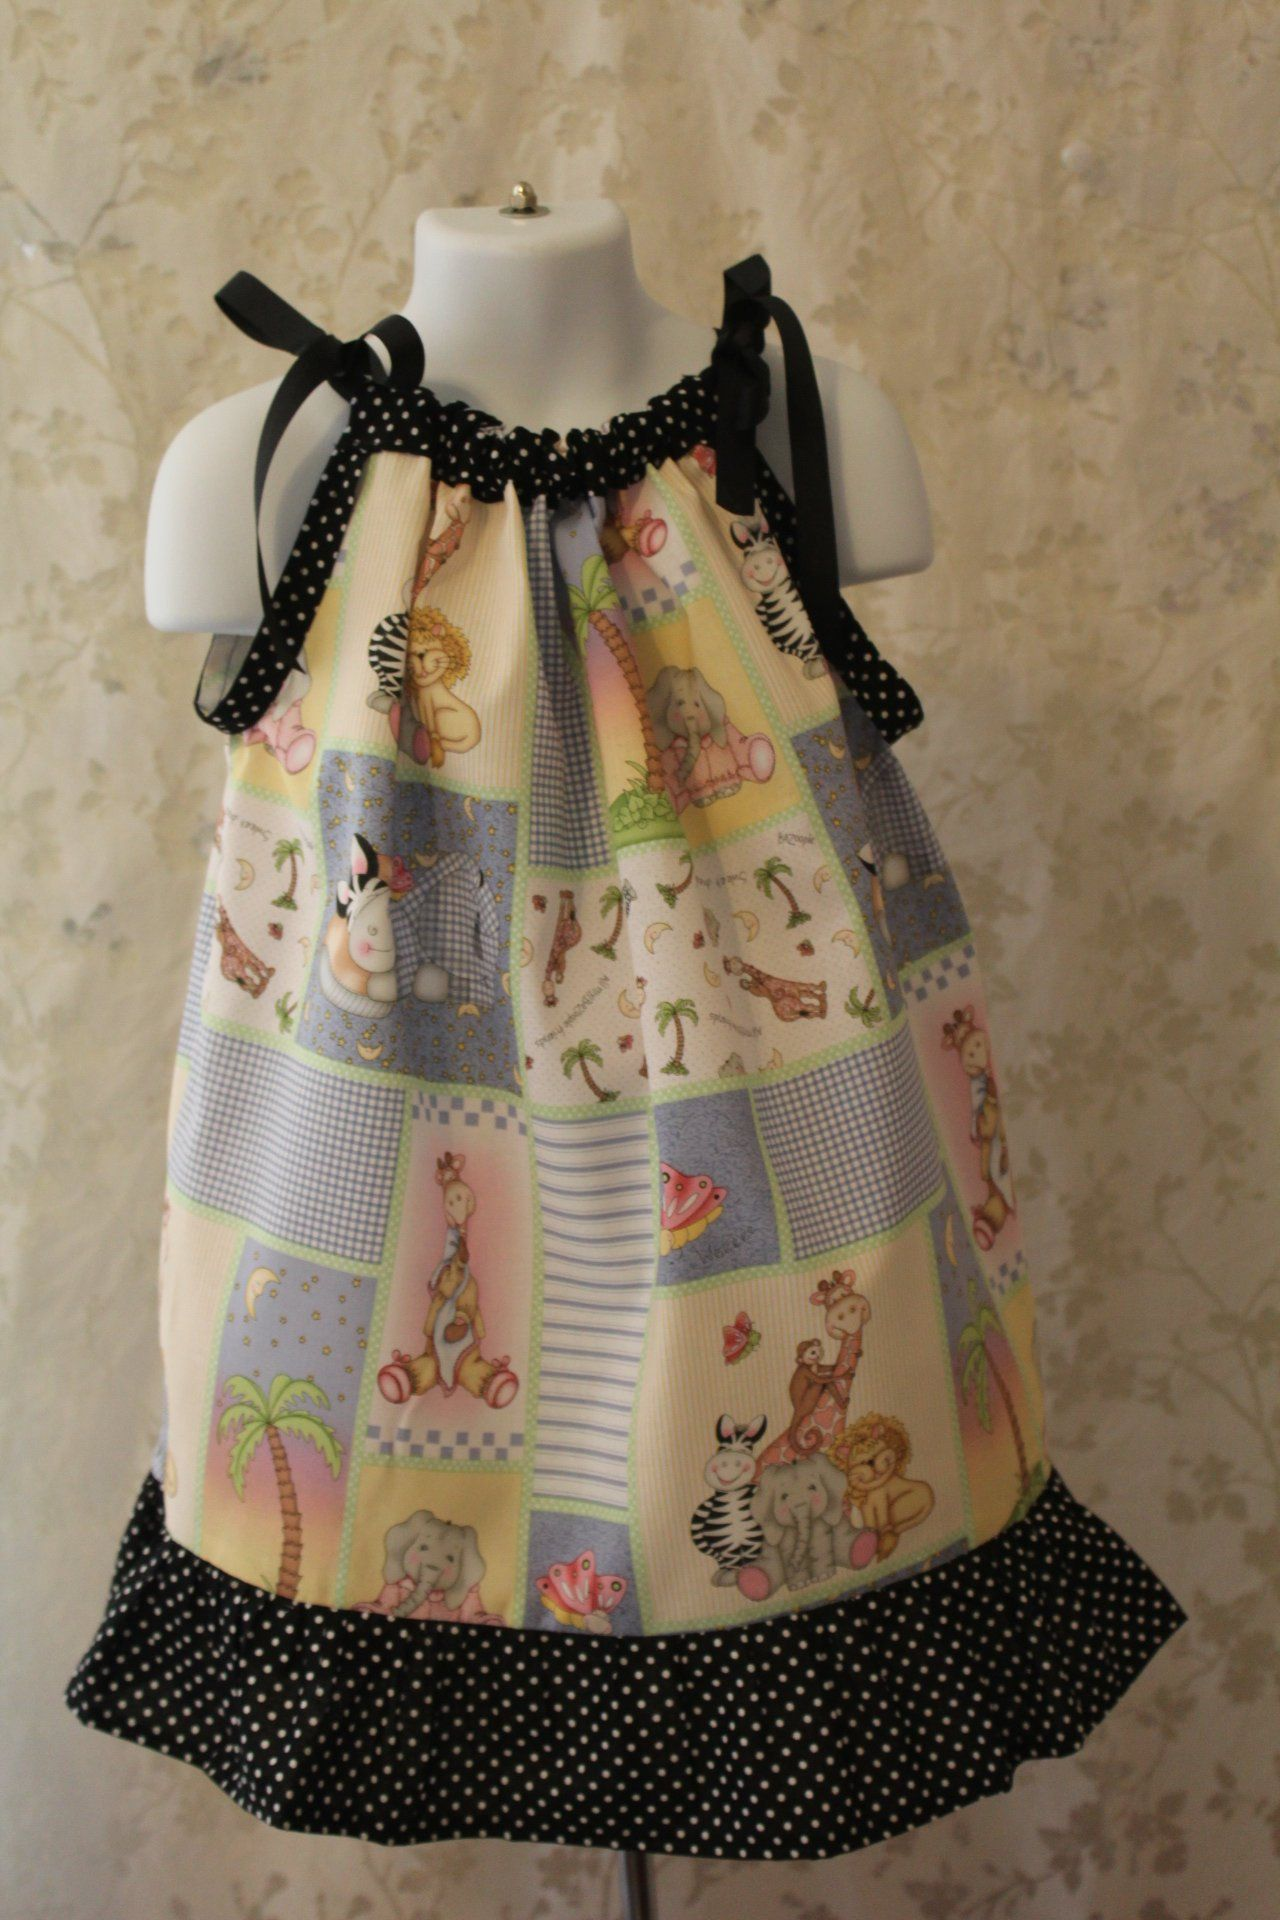 Handmade New Toddlers Dress Size 3 4t Pastel Colors Black And Etsy Toddler Dress Girls Wear How To Wear [ 1920 x 1280 Pixel ]